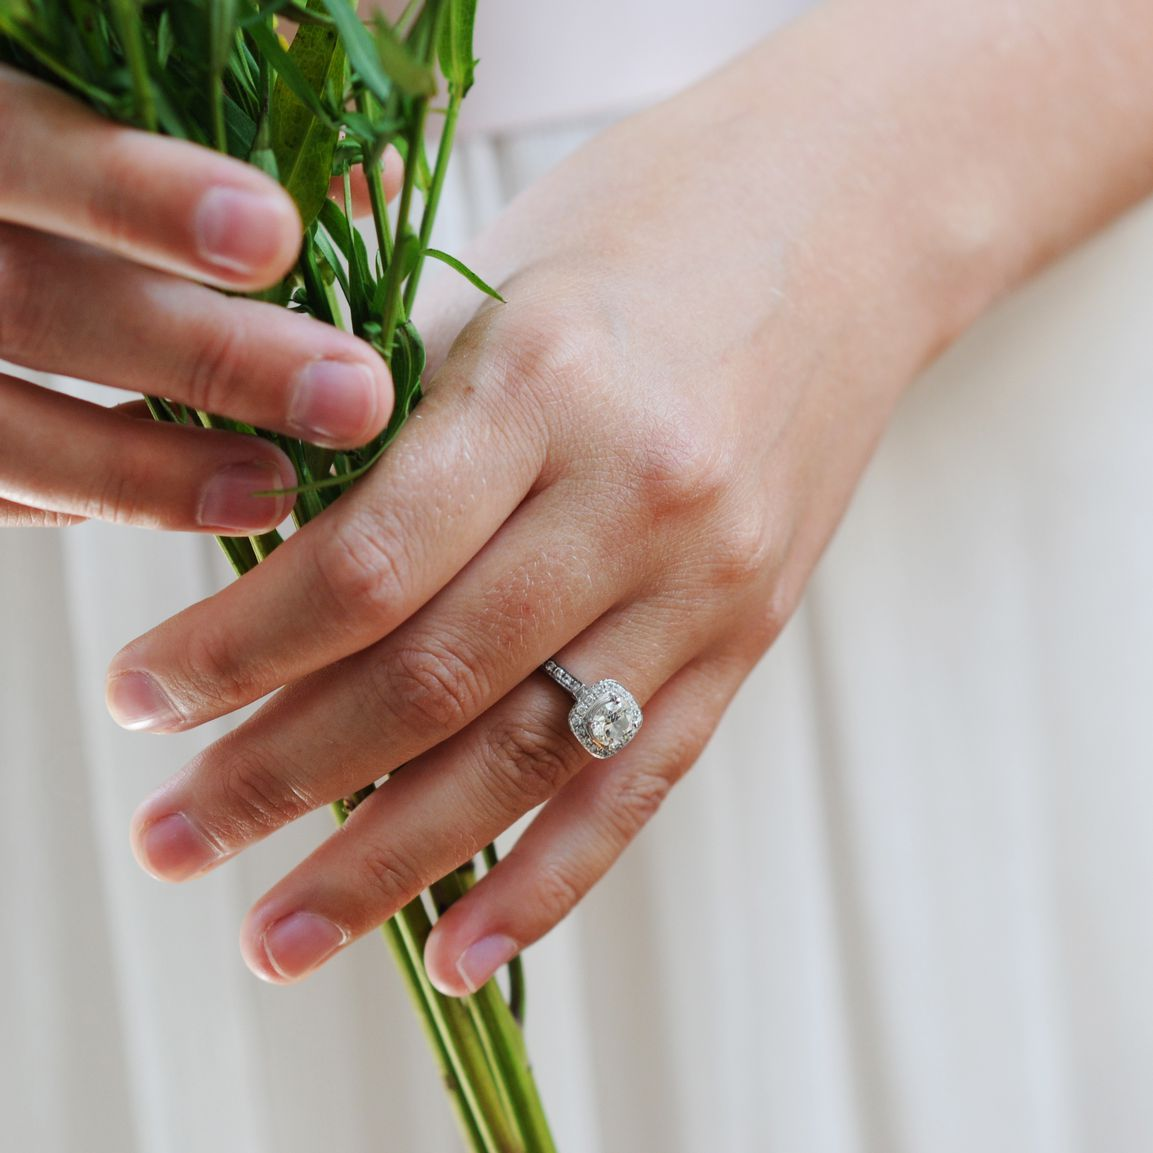 How To Find The Best Deals On Engagement Rings